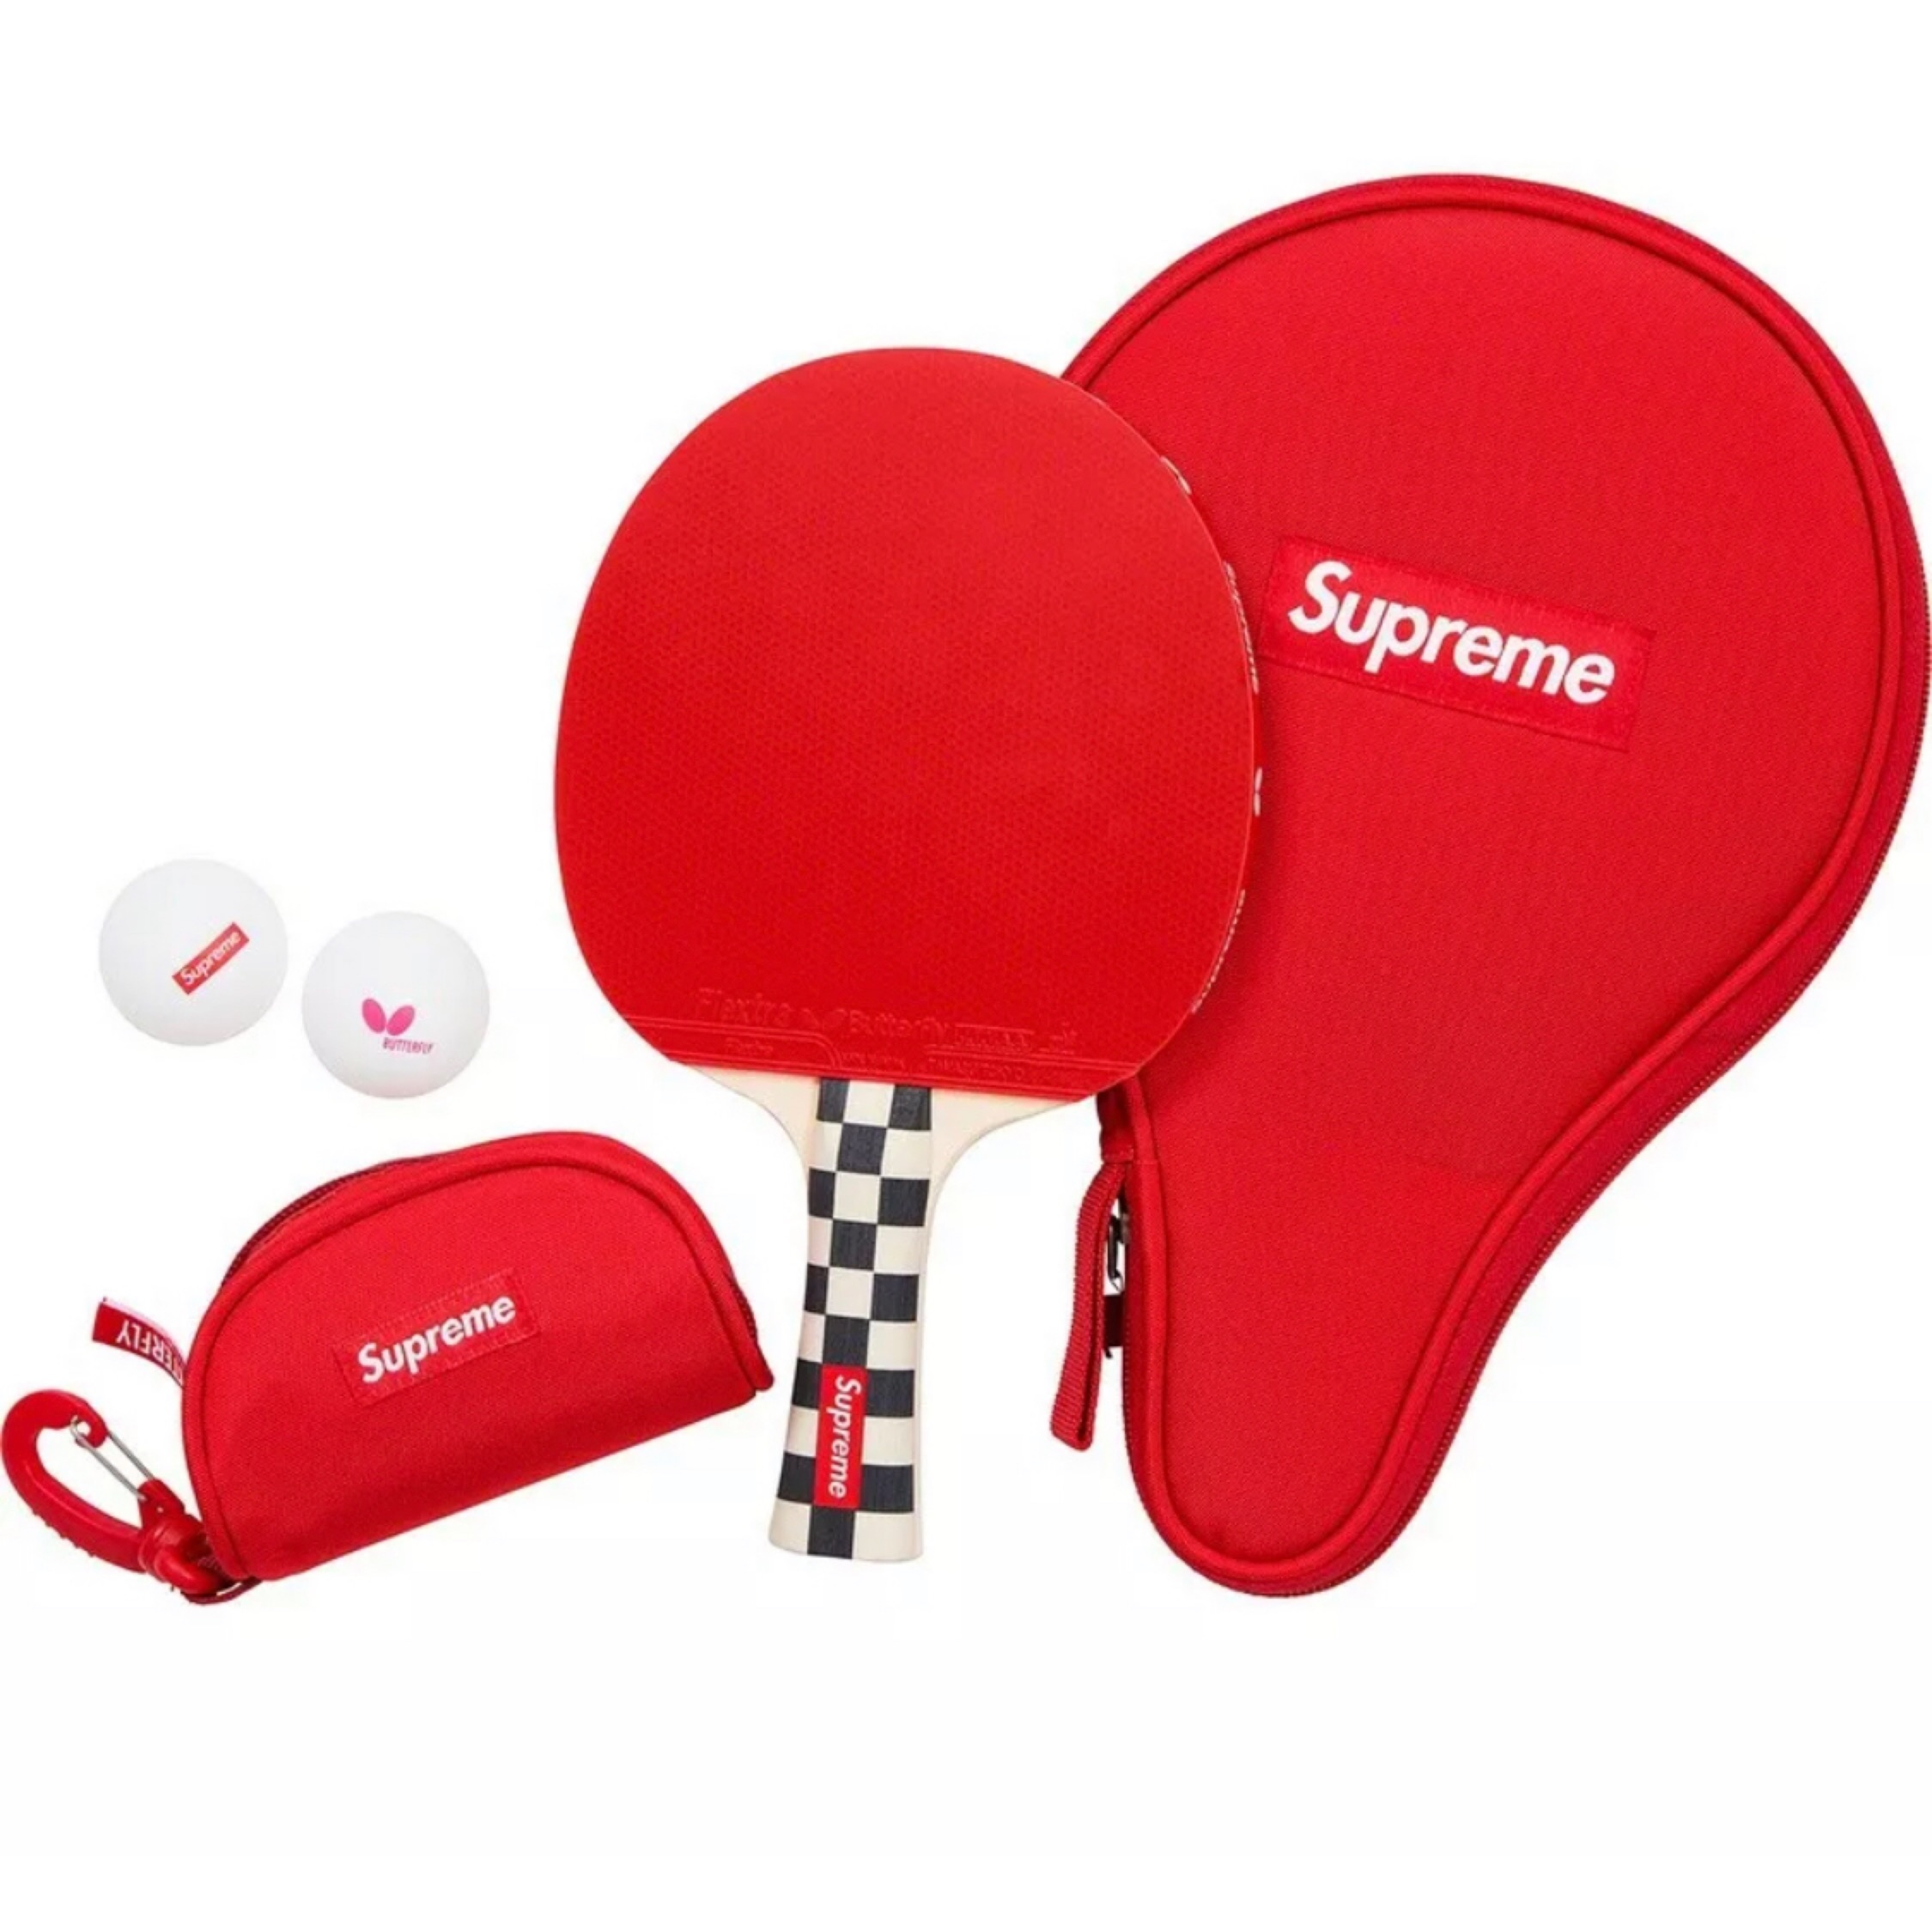 Magnificent Supreme Butterfly Table Tennis Racket Set Fw19 Download Free Architecture Designs Grimeyleaguecom